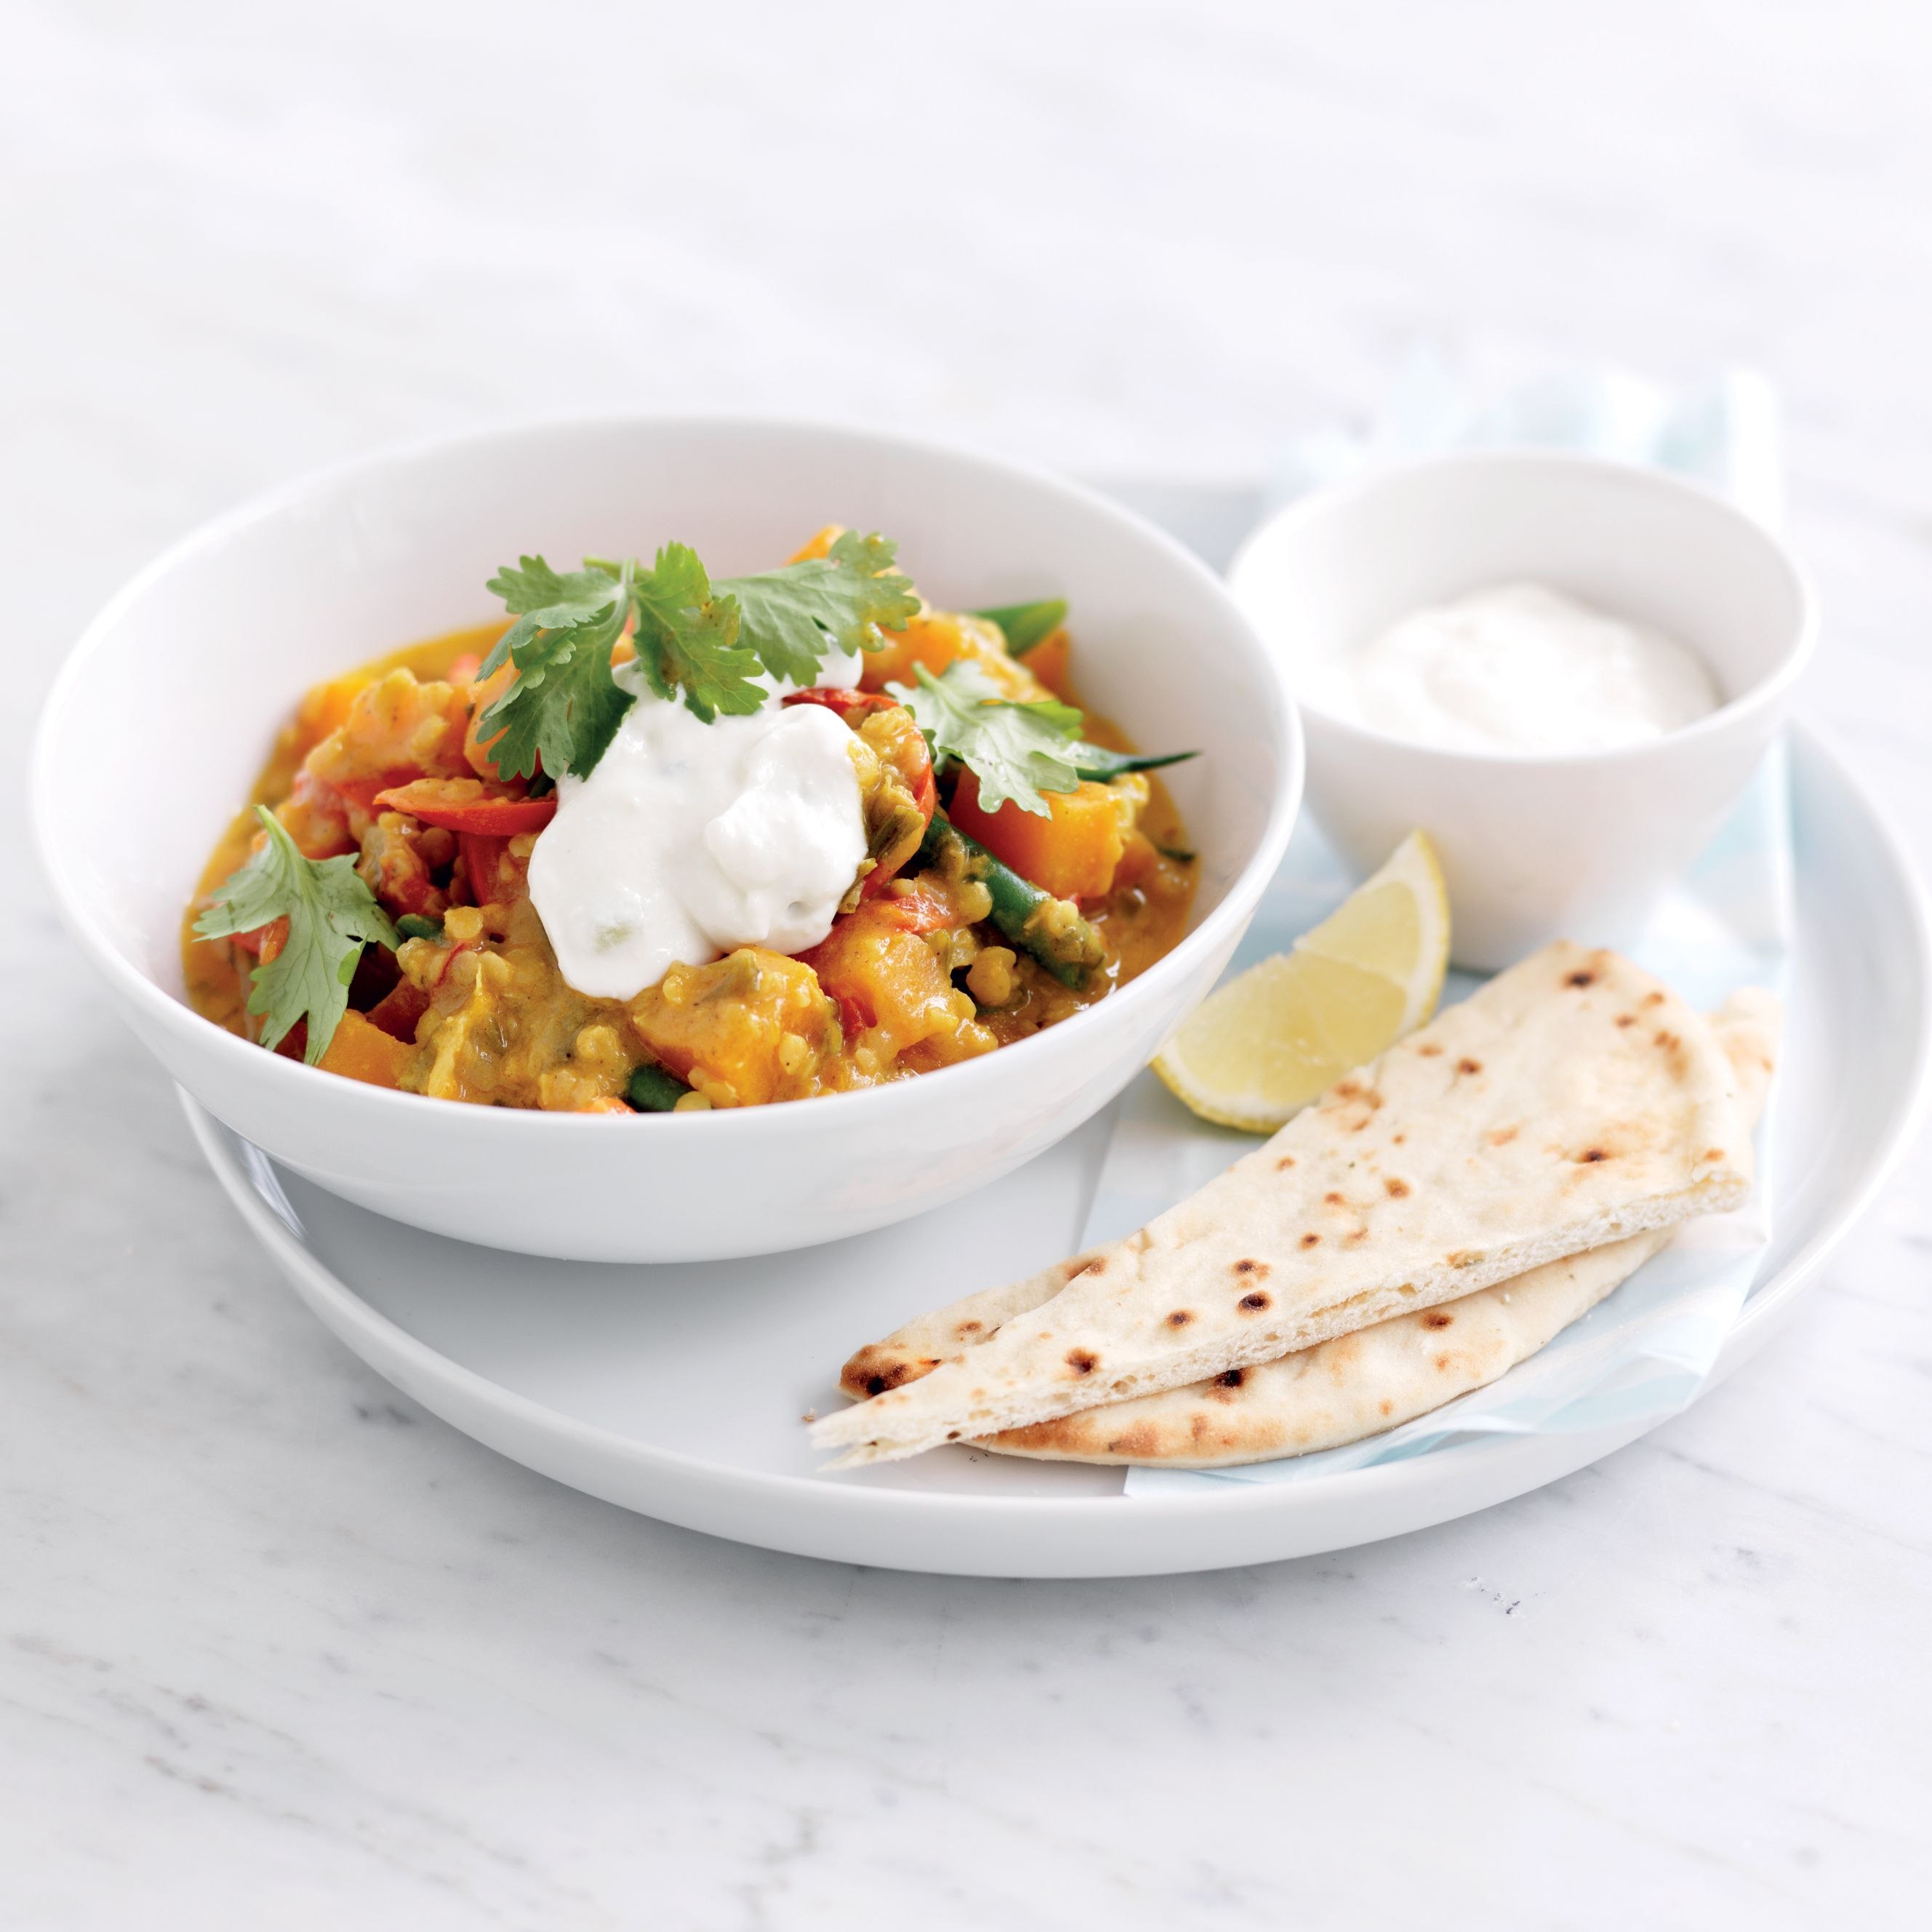 Vegetarian korma curry get the recipe in healthy food guides free vegetarian korma curry get the recipe in healthy food guides free ebook download it here forumfinder Choice Image